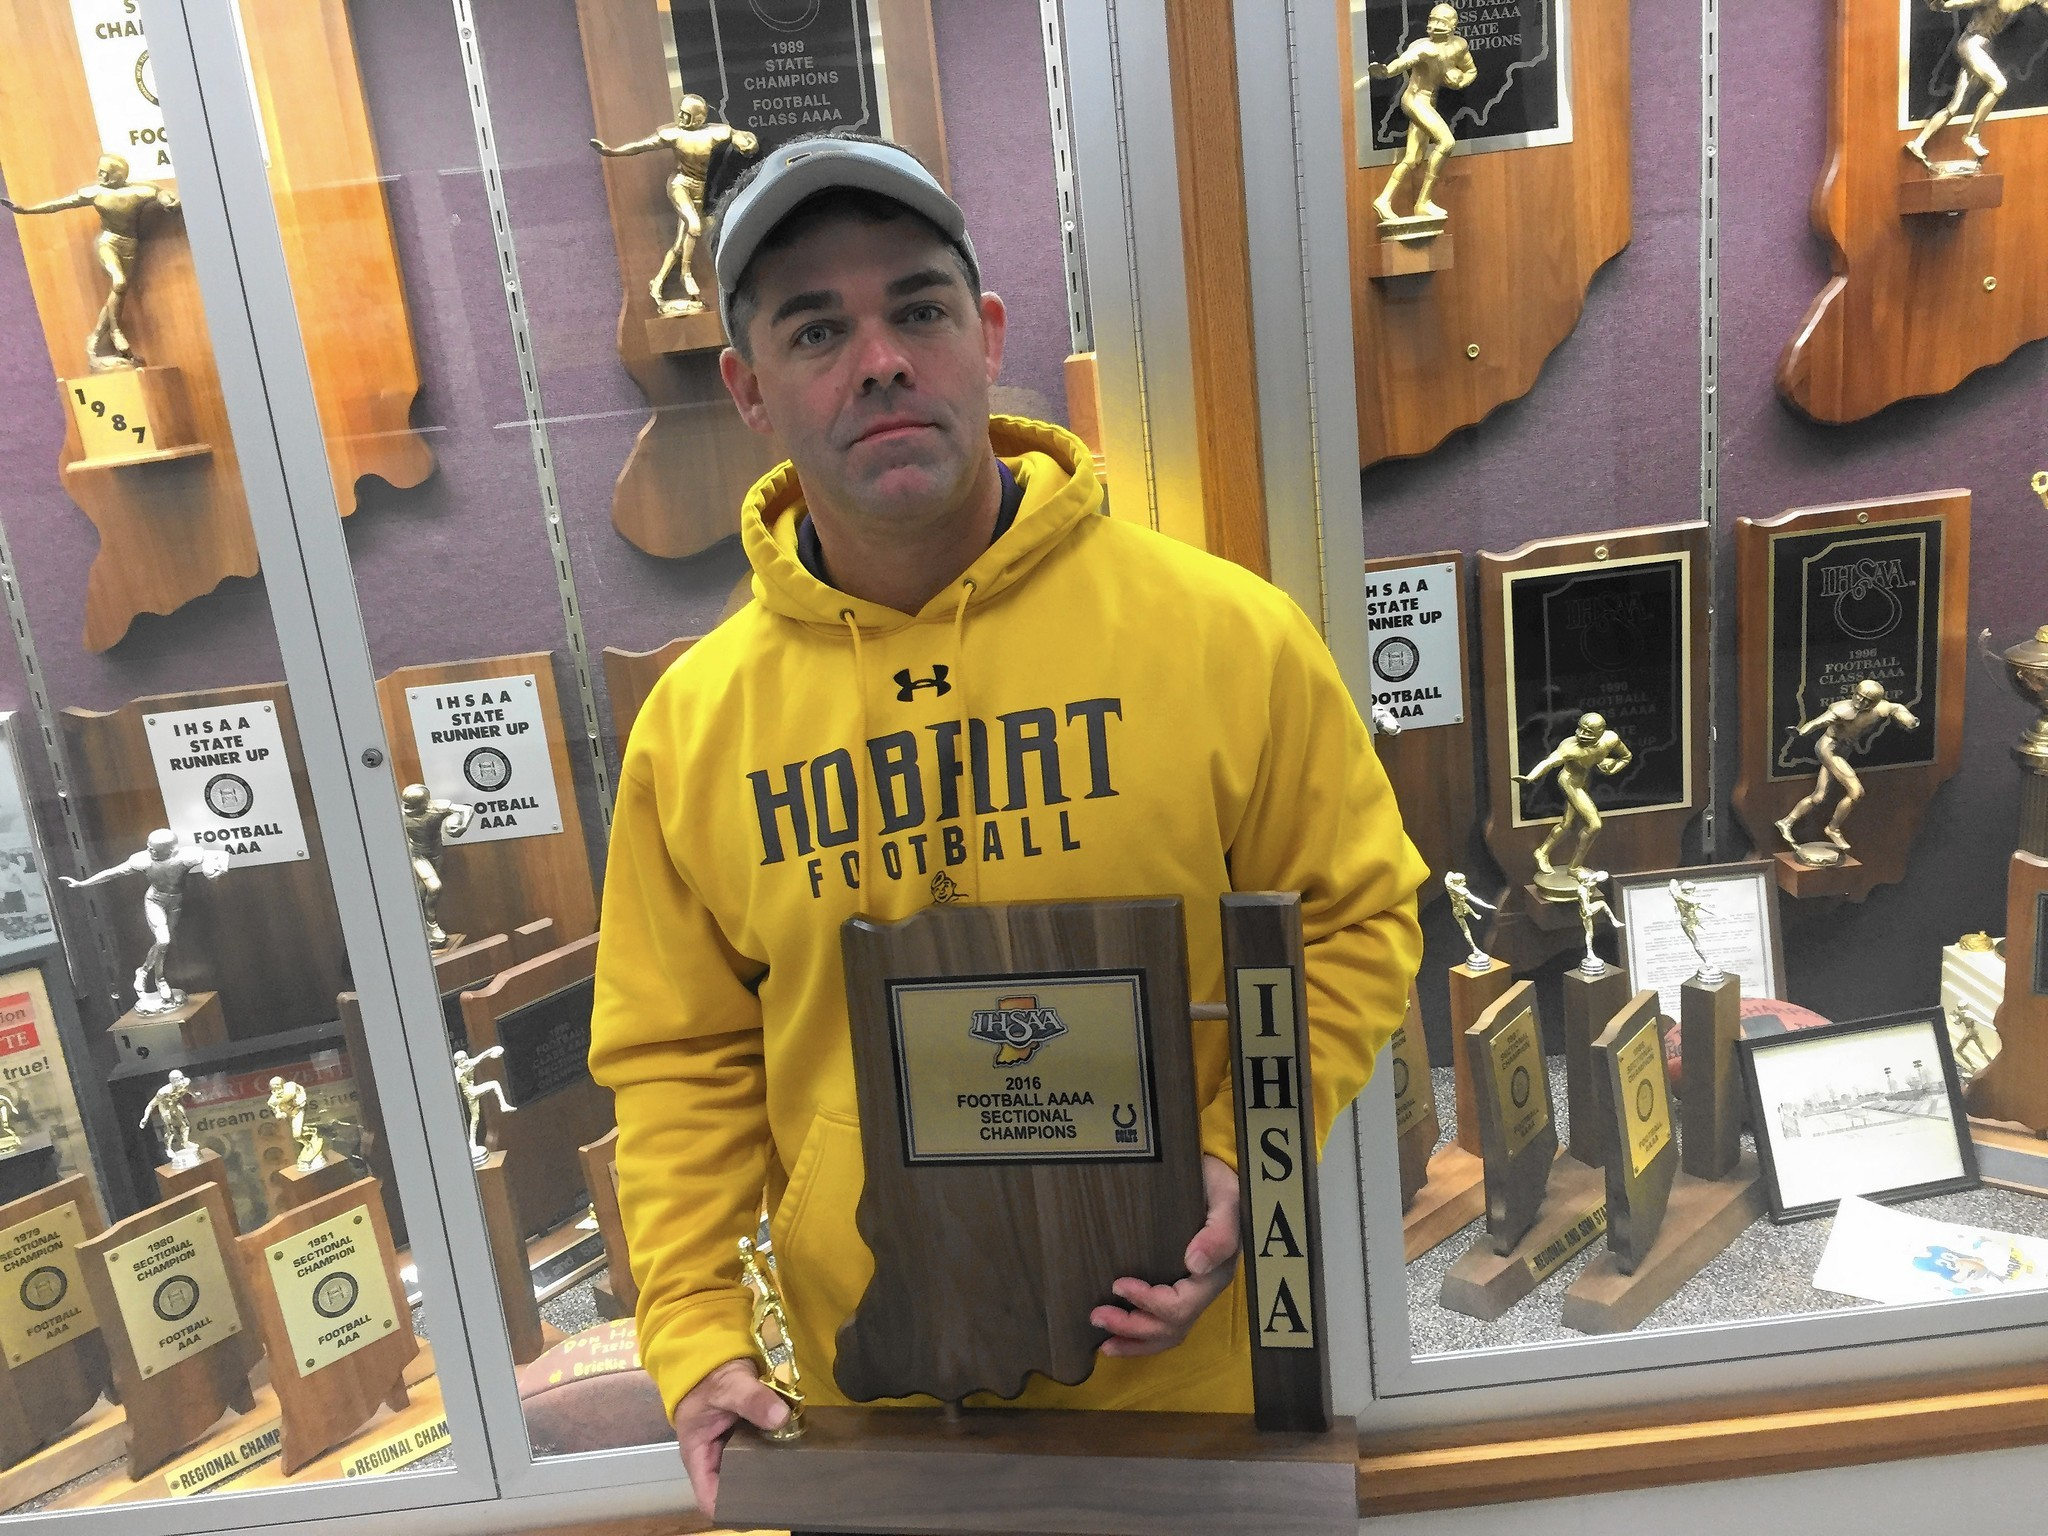 Hobart's Ryan Turley the Post-Tribune 2016 Football Coach of the Year